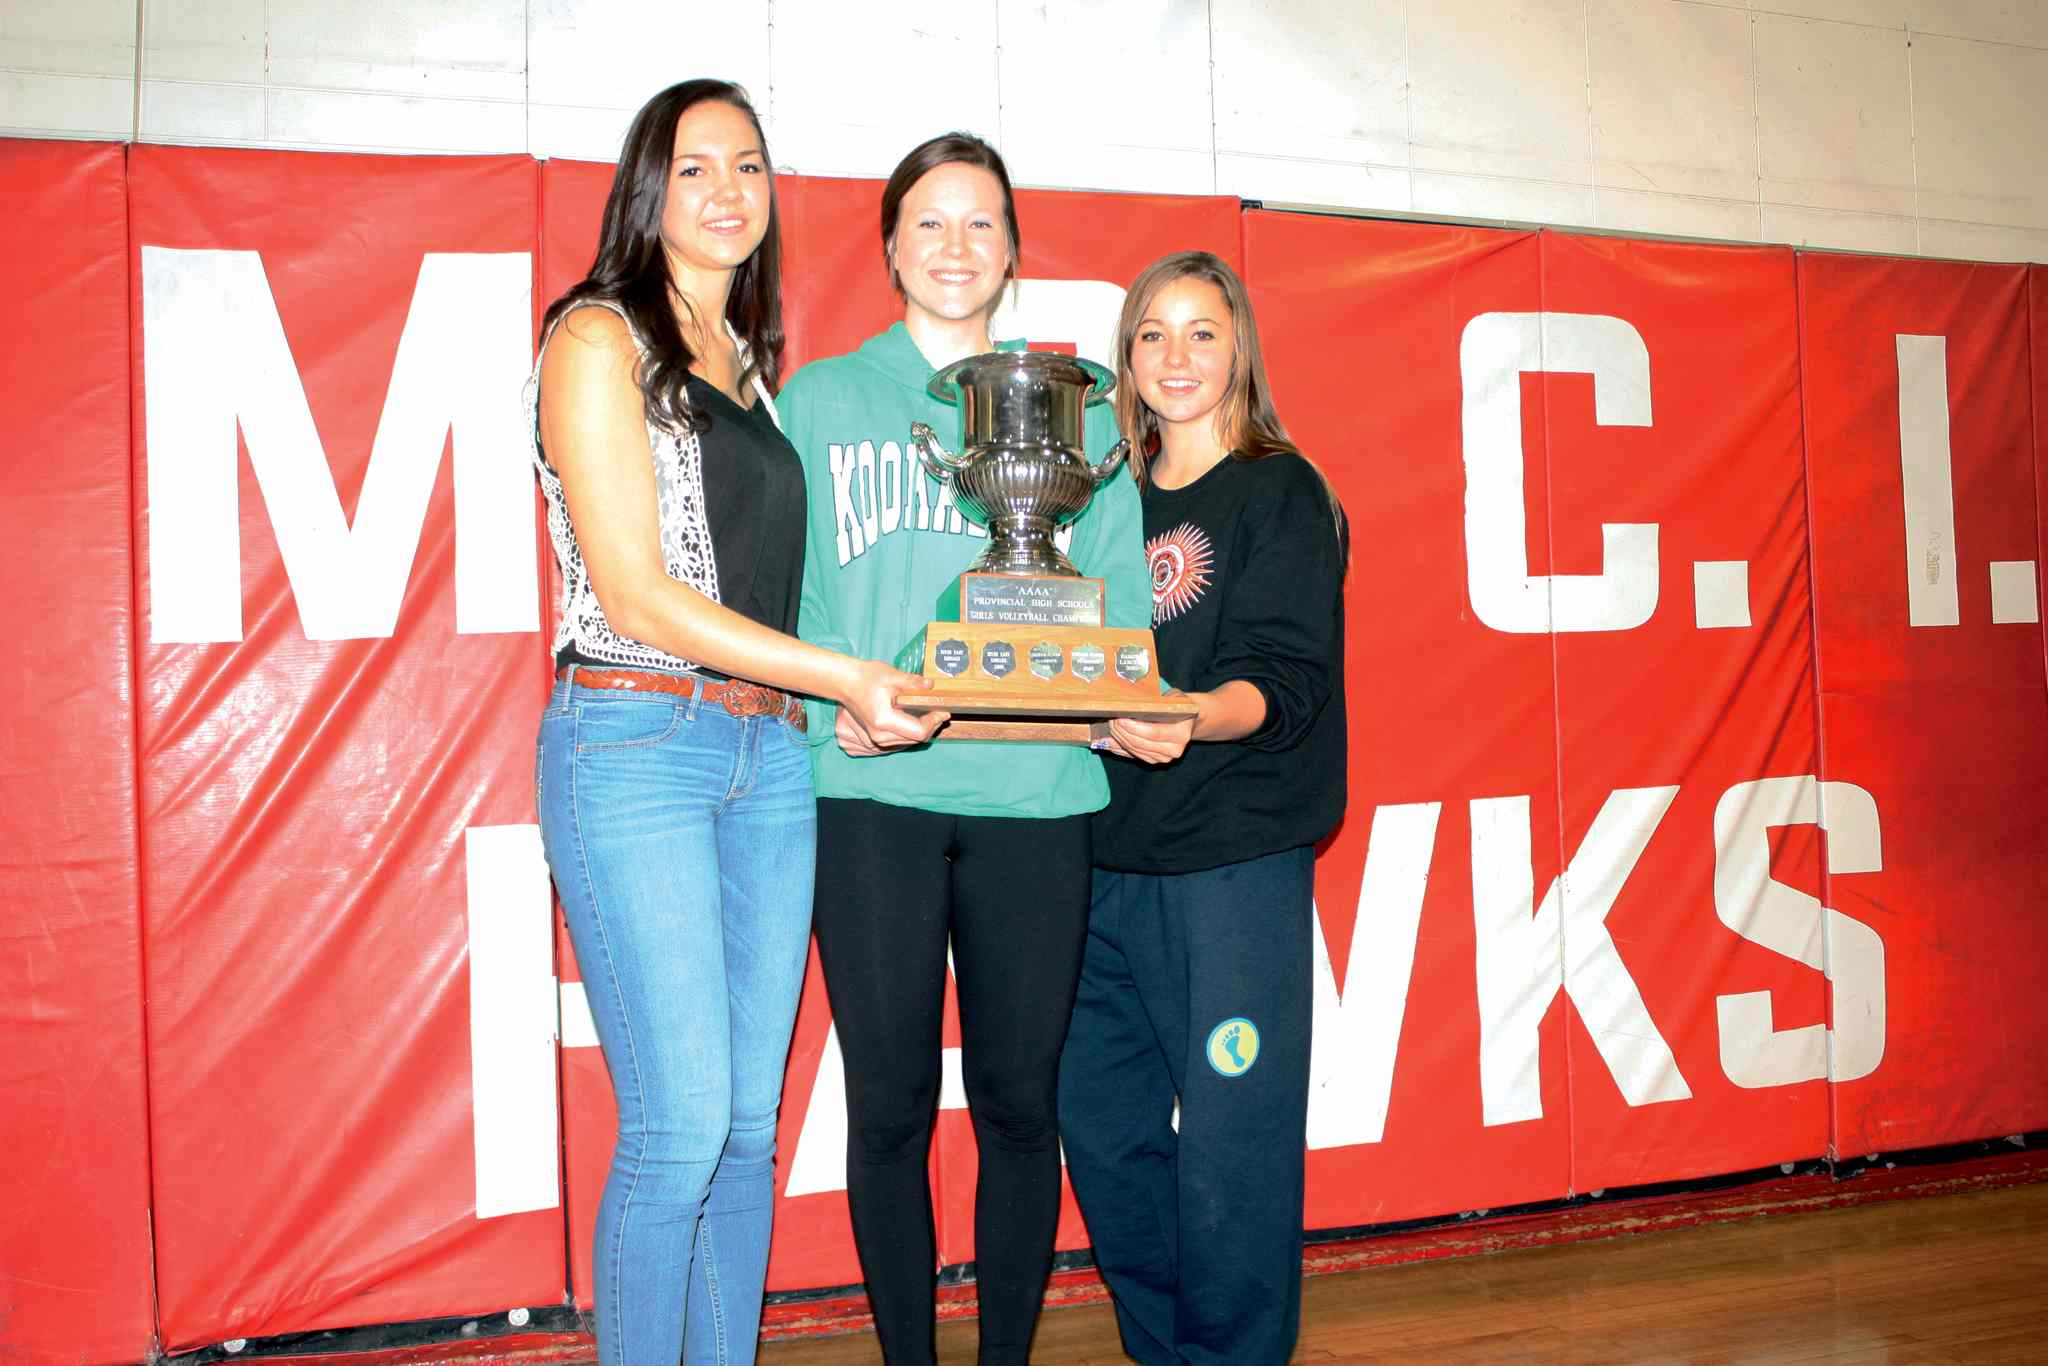 Mennonite Brethren Collegiate Institute Hawks varsity girls' volleyball players Kalena Schulz, Shayna Staerk, and Maiya Westwood are shown with the fruits of victory after capturing the Boston Pizza AAAA Volleyball Championships on Dec. 2.